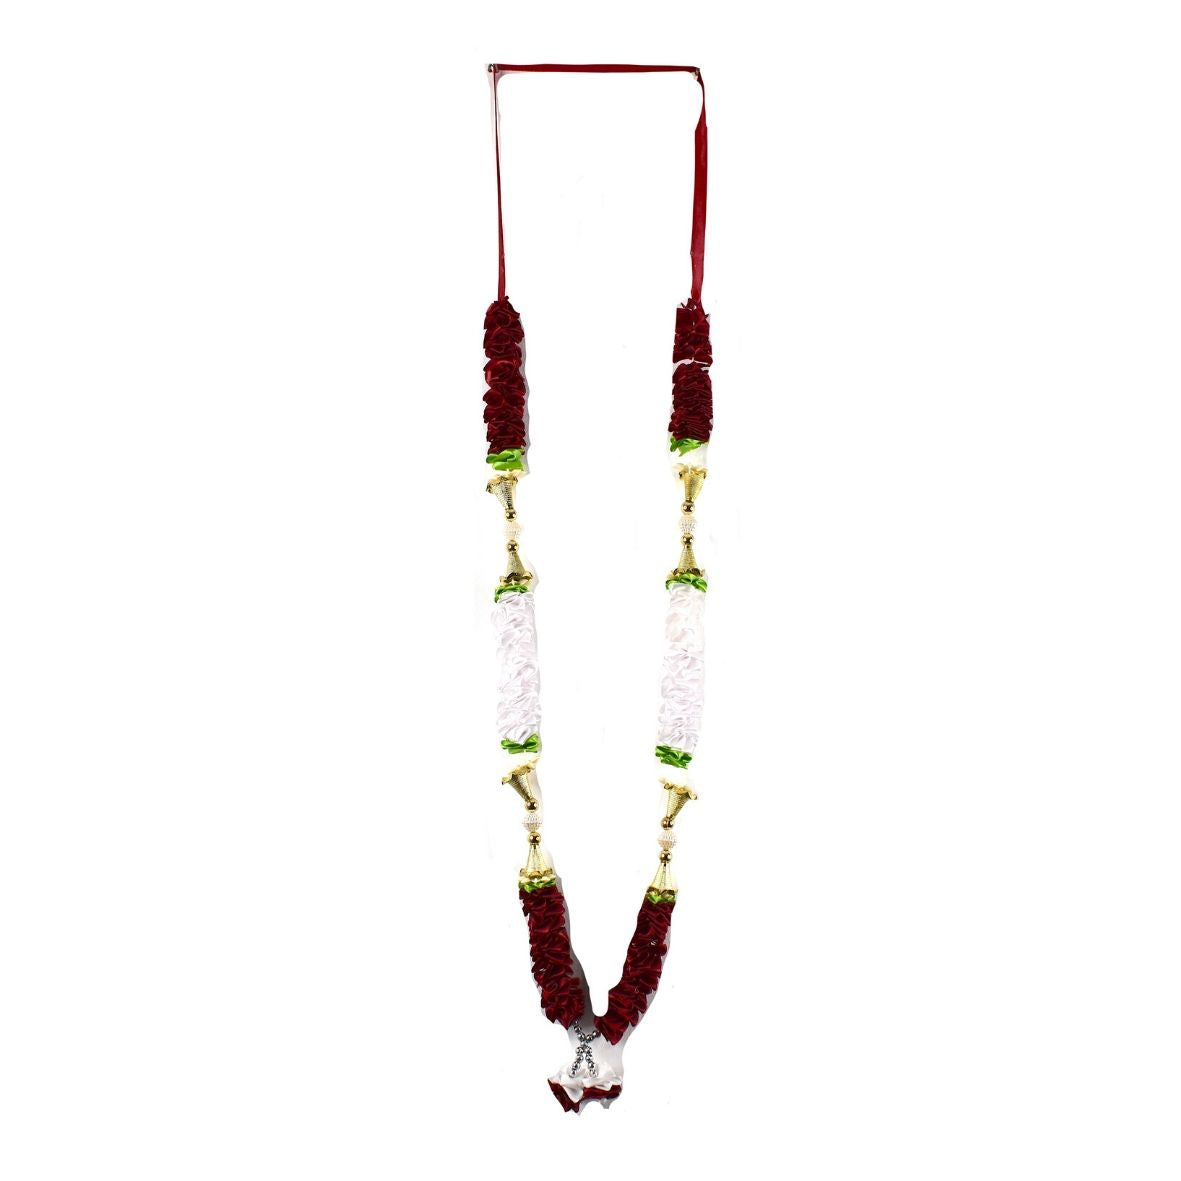 1 x Burgundy / White / Green Artificial Necklace Garland Flowers with Bells